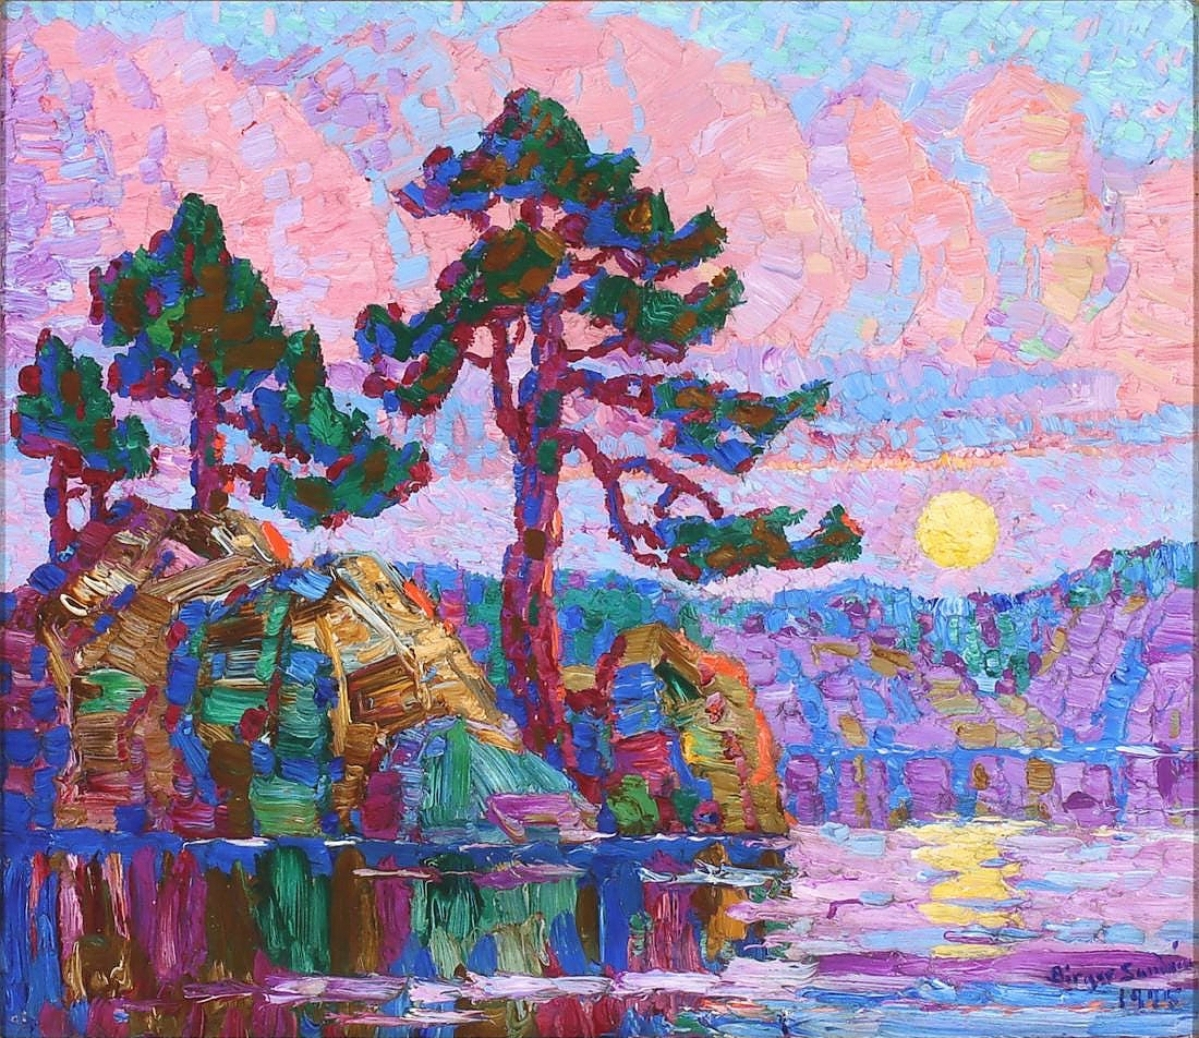 """The sale found its leader at $154,000 for """"Lake at Moonrise, Colorado"""" by Birger Sandzèn. The work, consigned from a Kansas collection and selling to a Kansas buyer, never strayed far from where it was made. Oil on board, 13½ by 15½ inches."""